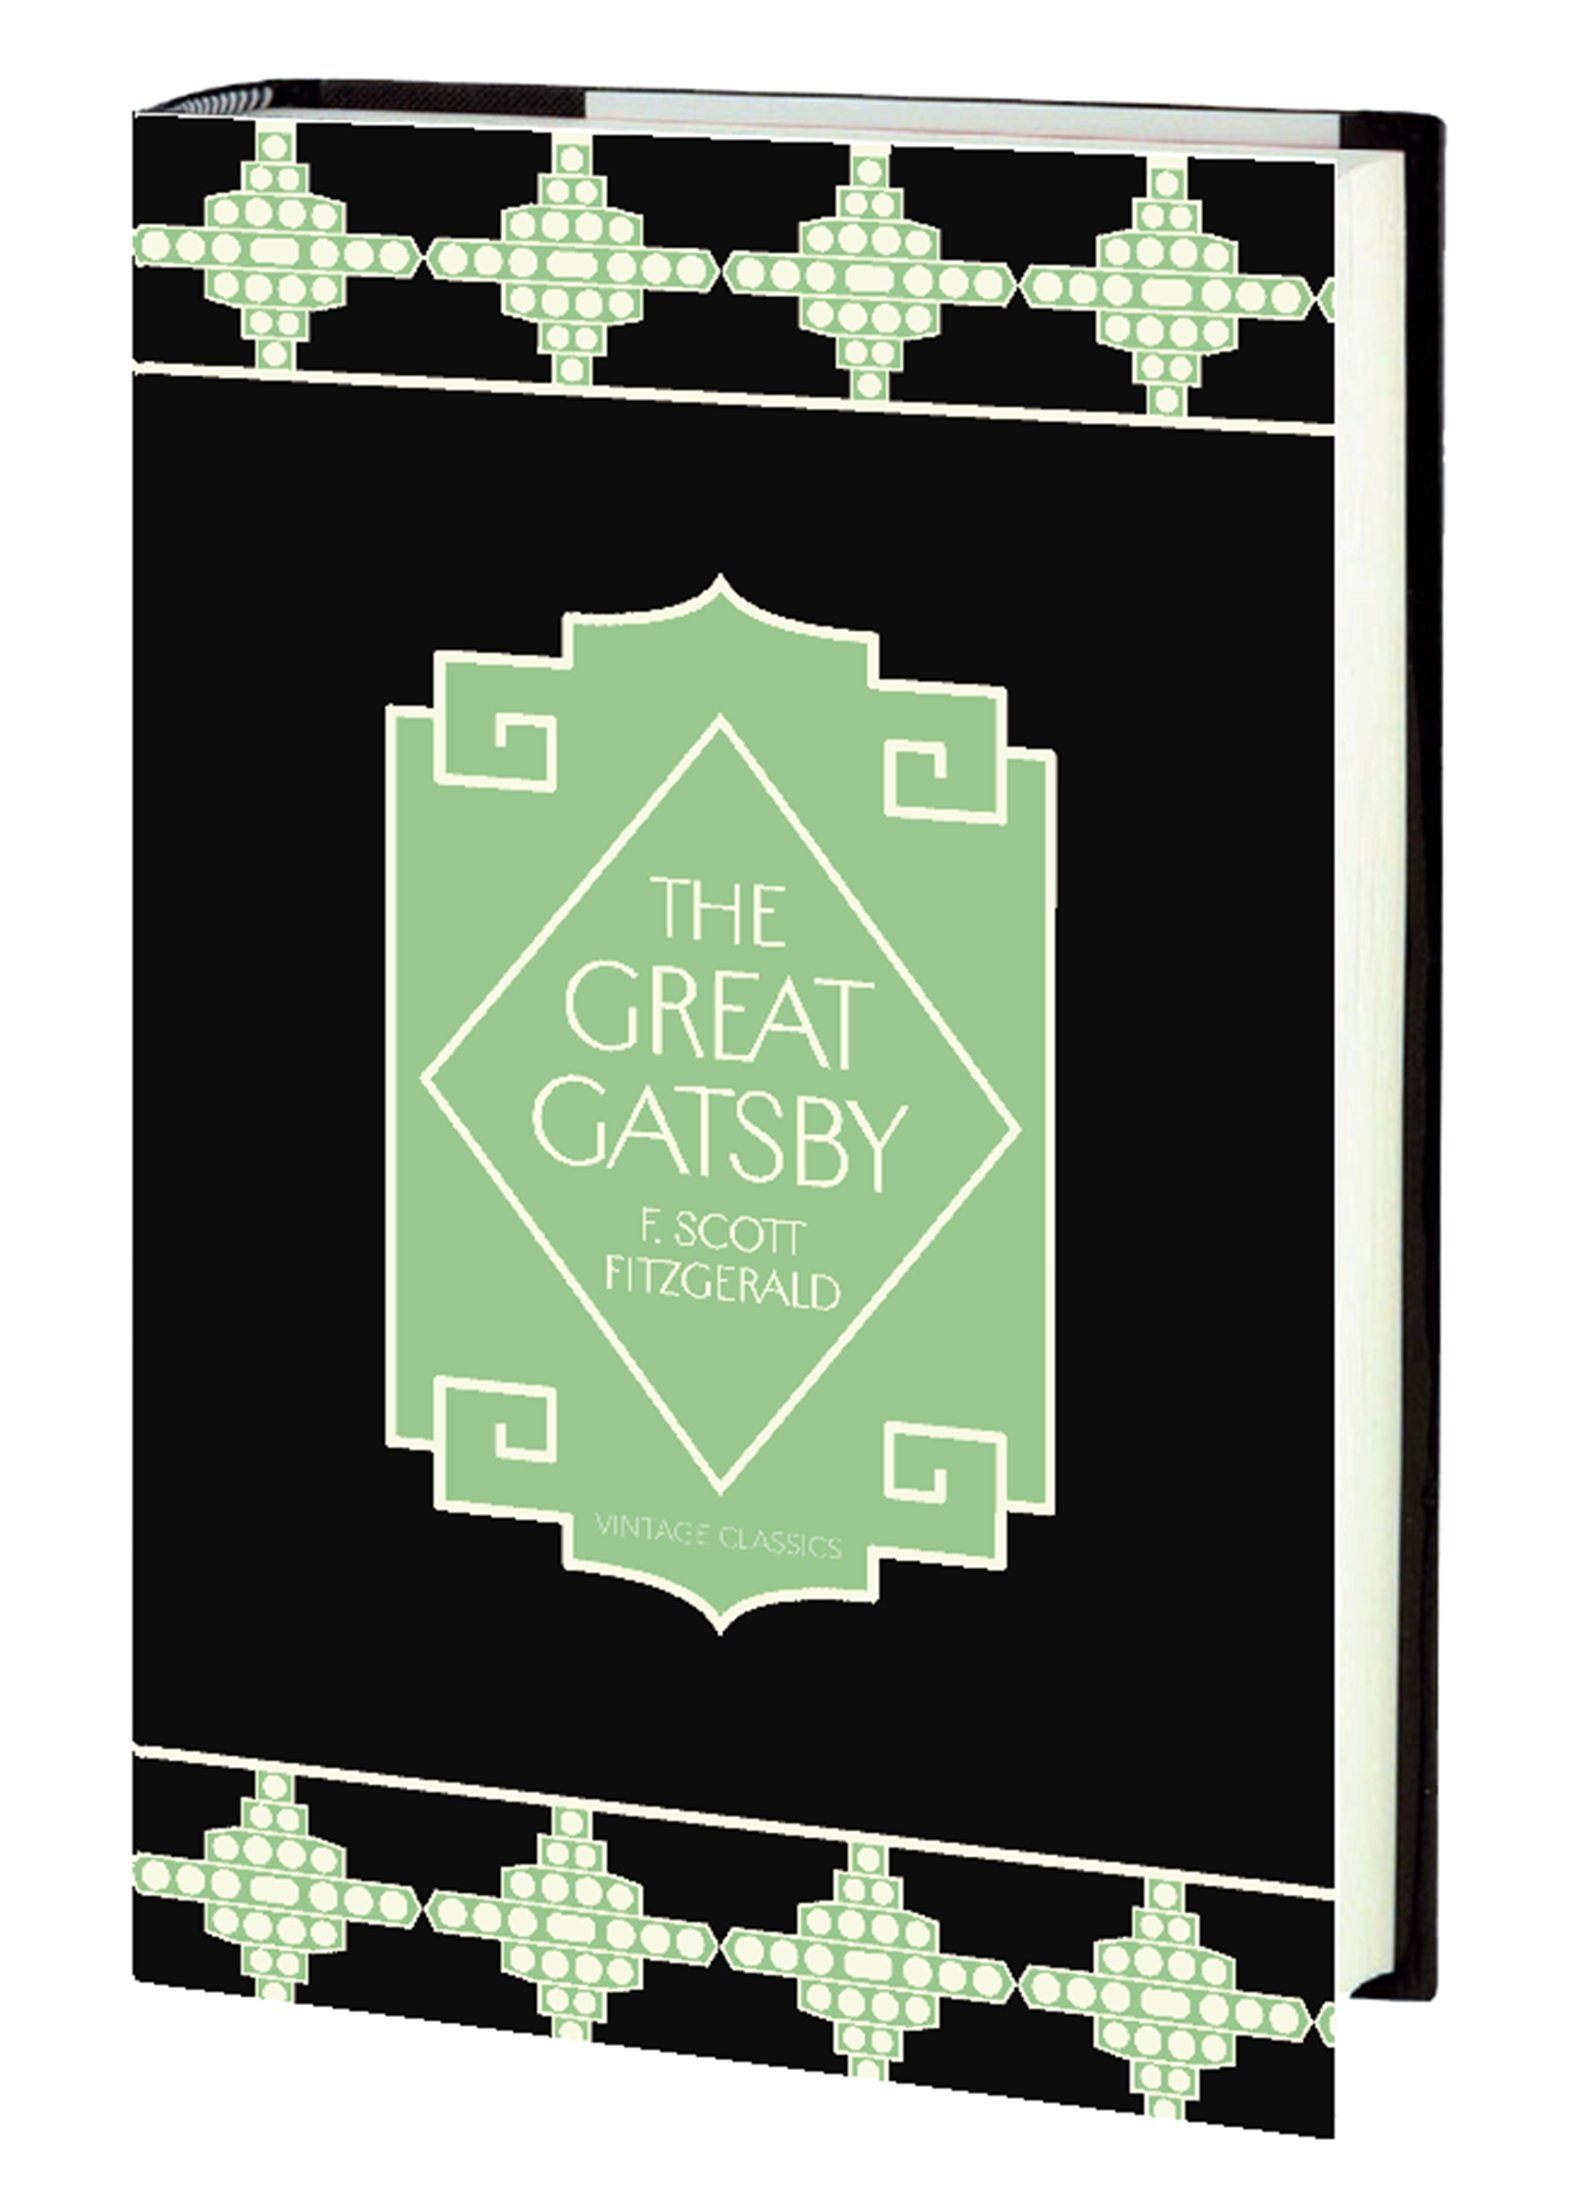 Buy The Great Gatsby (Vintage Classics) Book Online at Low Prices in India  | The Great Gatsby (Vintage Classics) Reviews & Ratings - Amazon.in